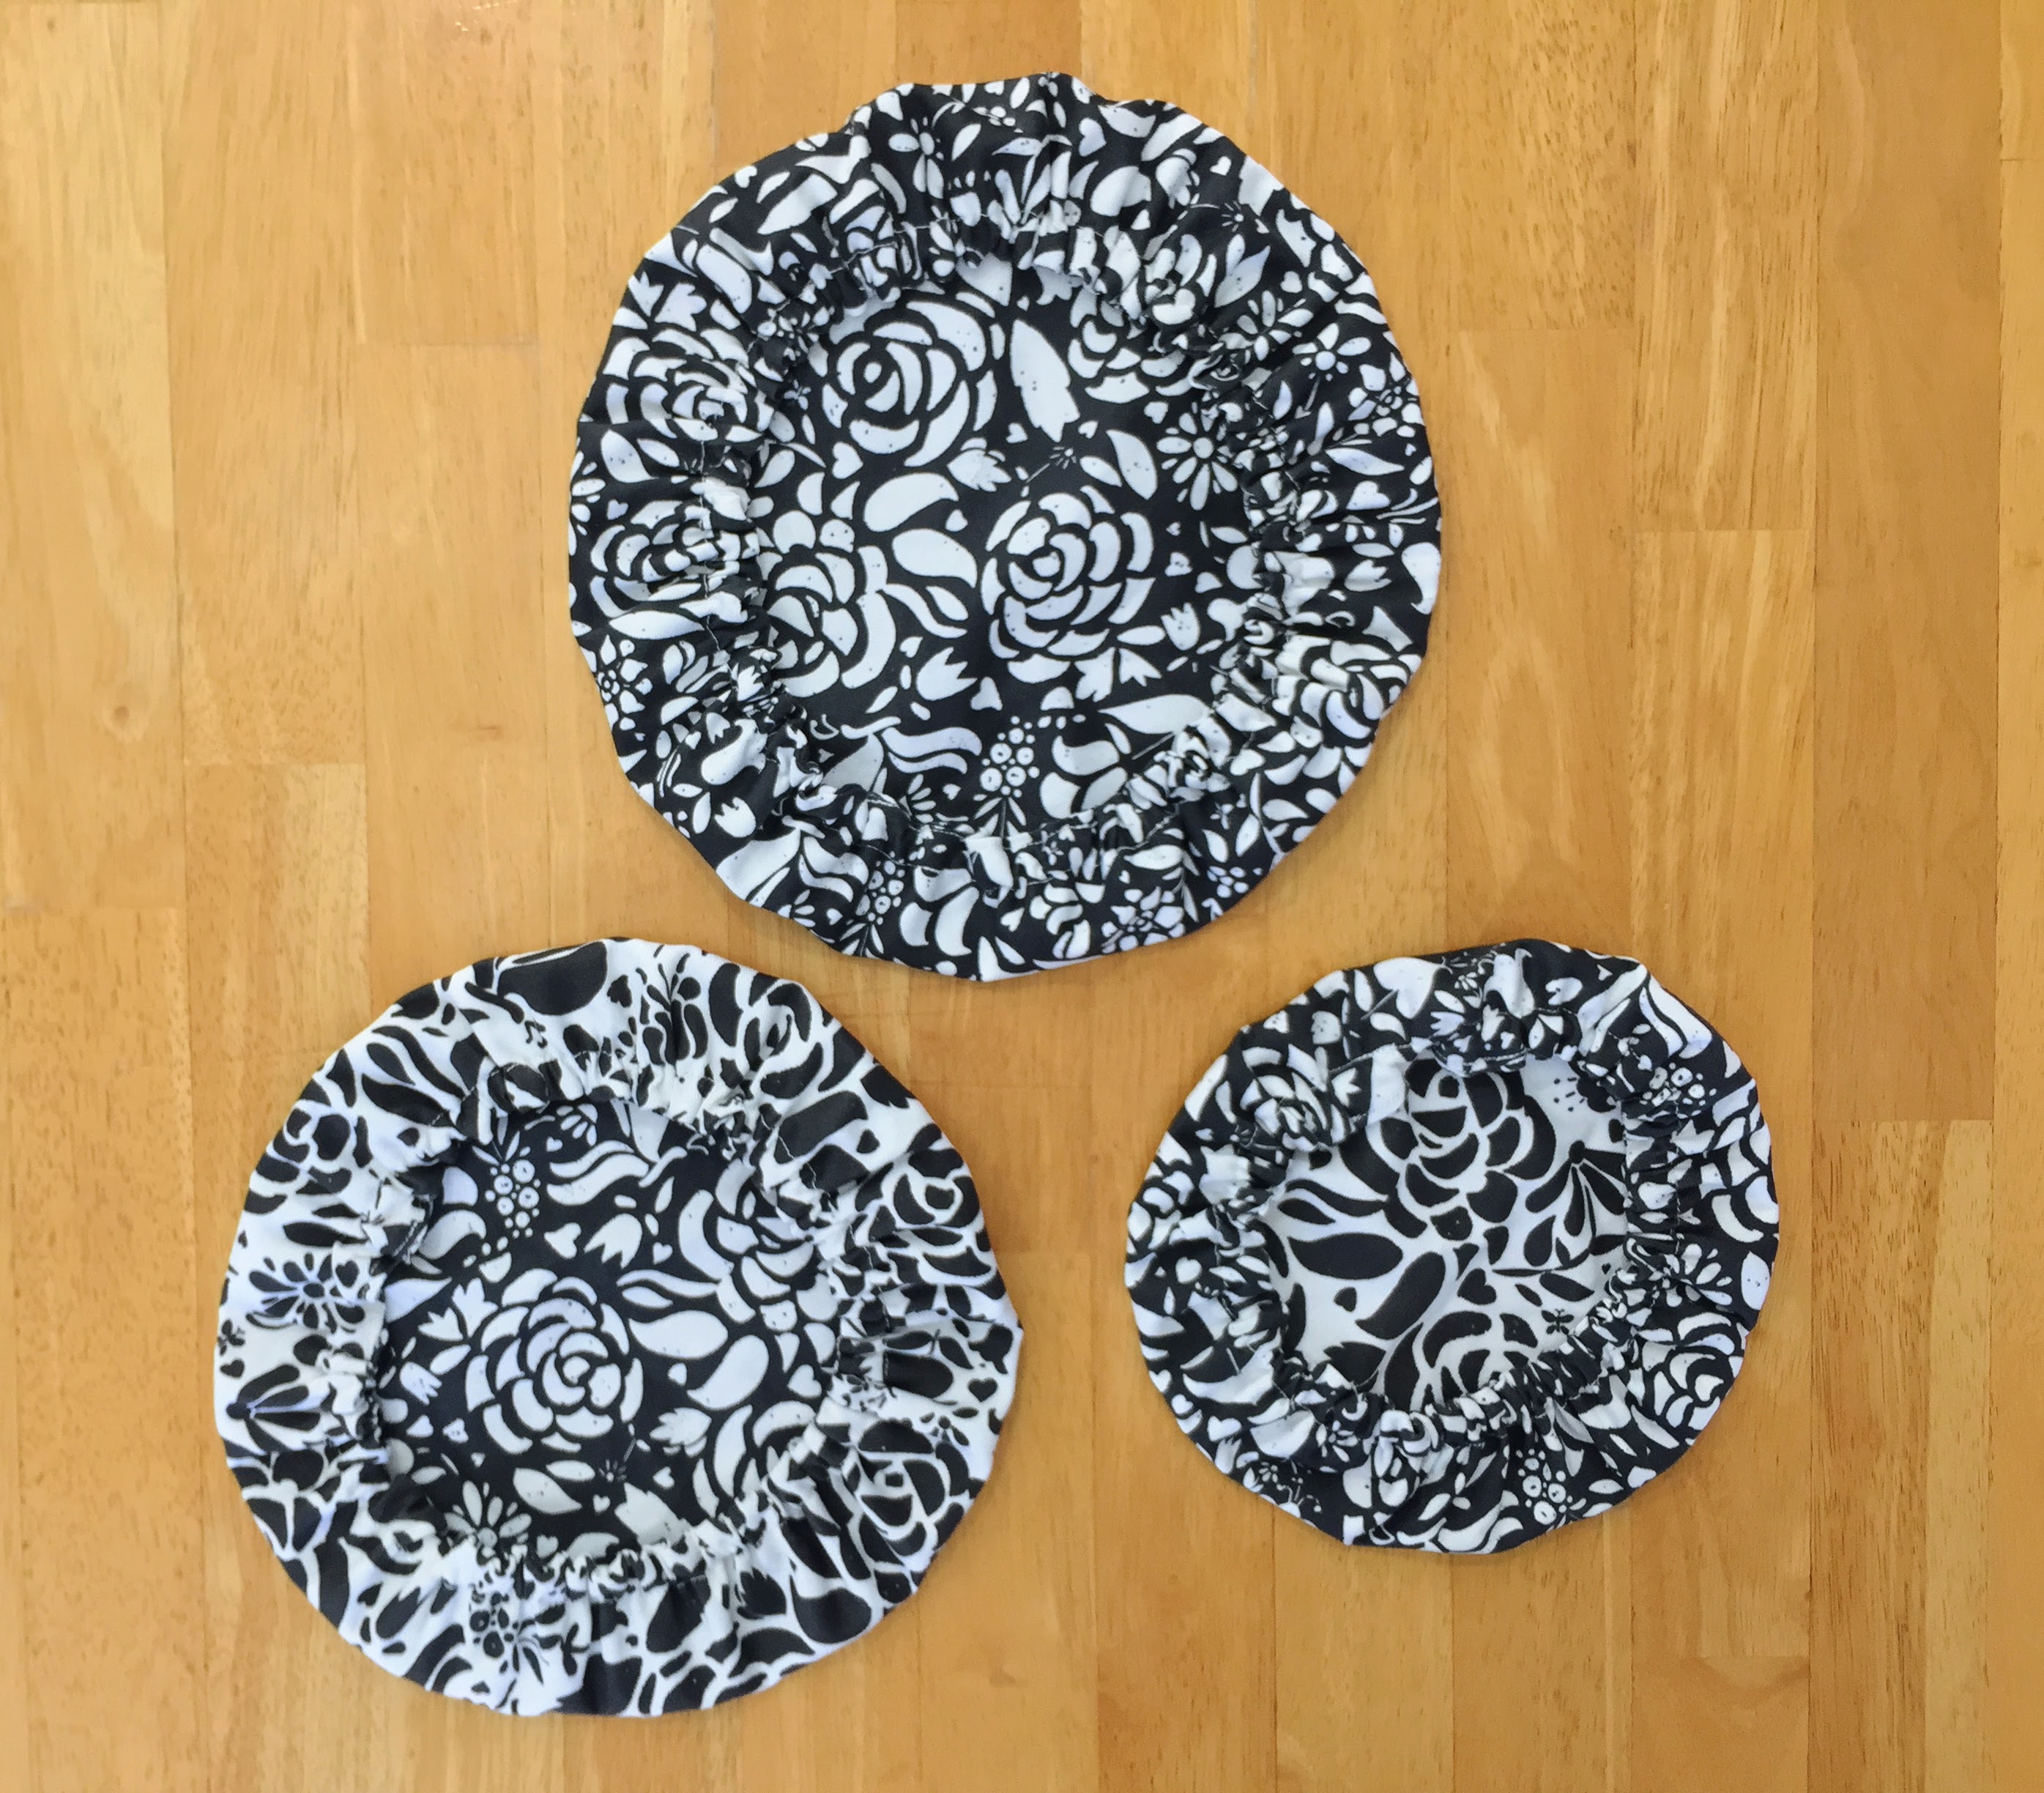 Three finished bowl covers different sizes